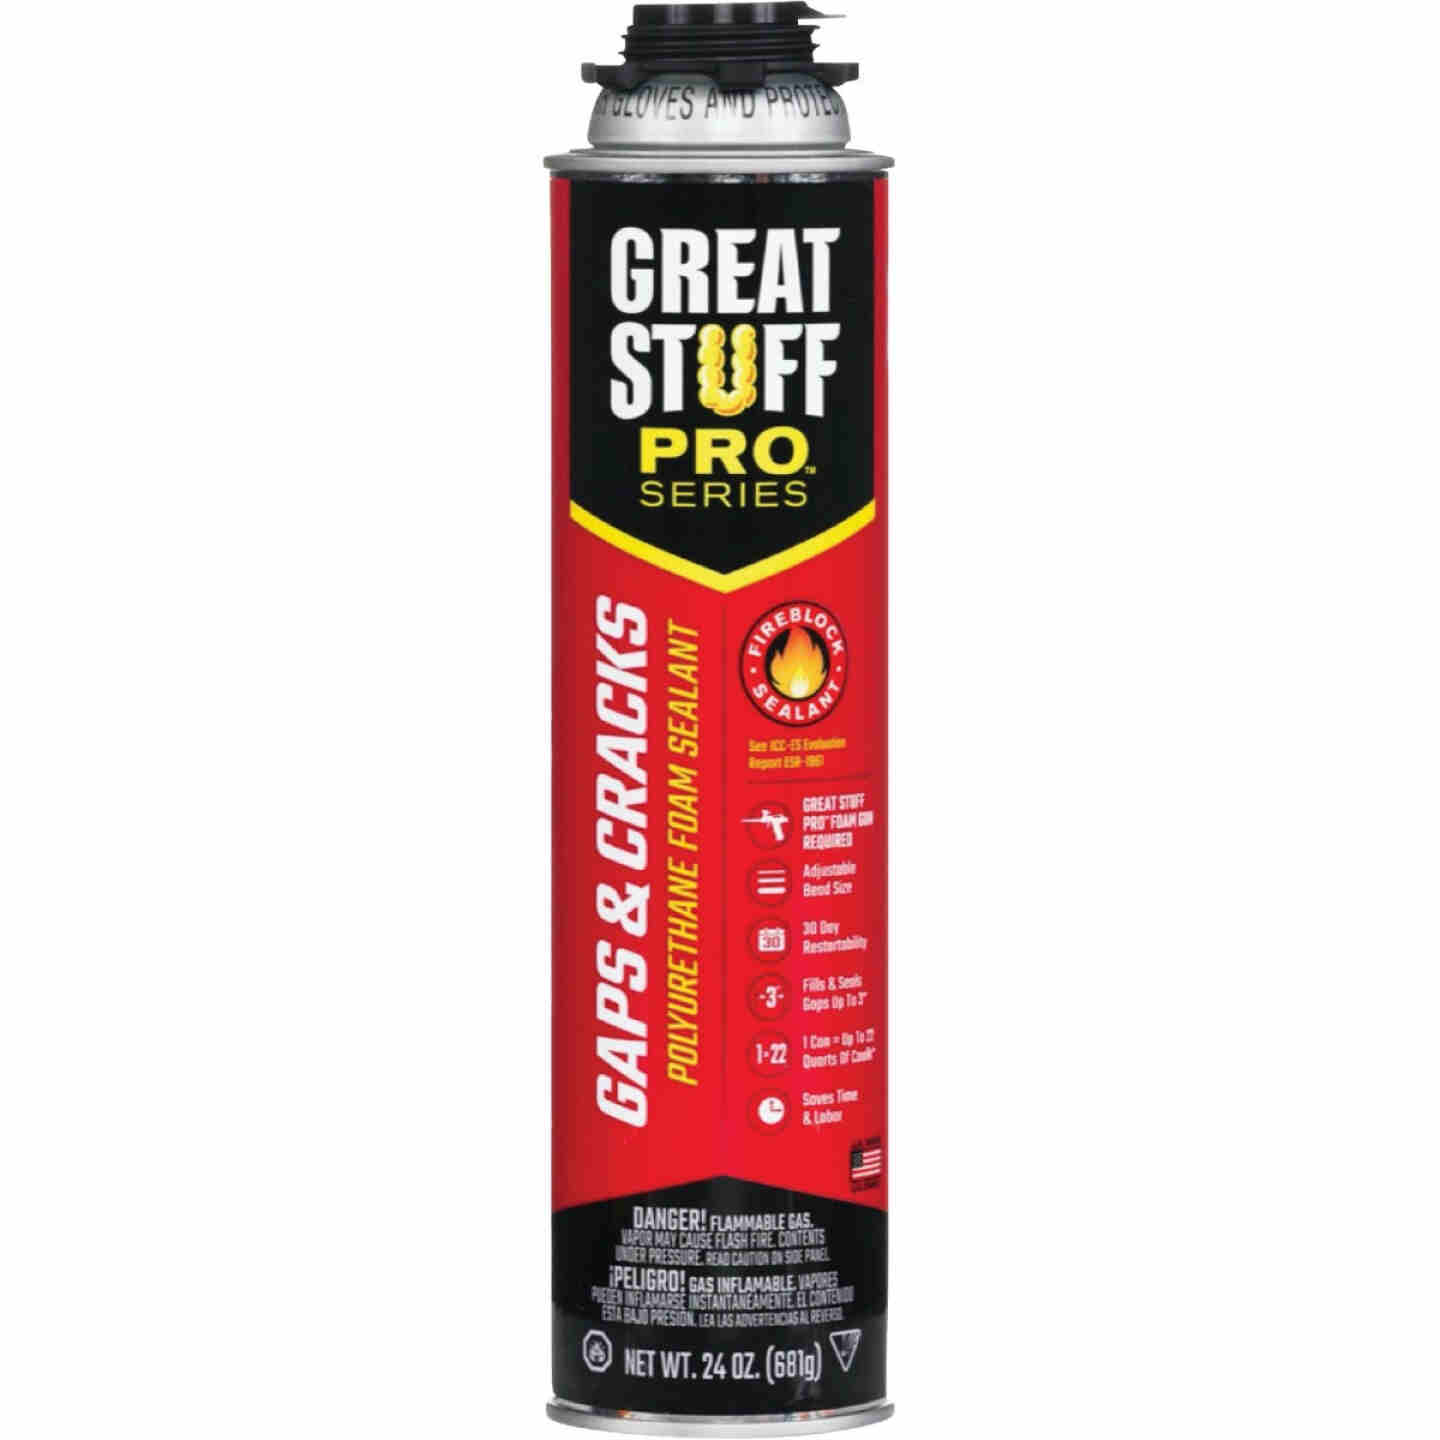 Great Stuff Pro Gaps & Cracks 24 Oz. Gun Foam Image 1